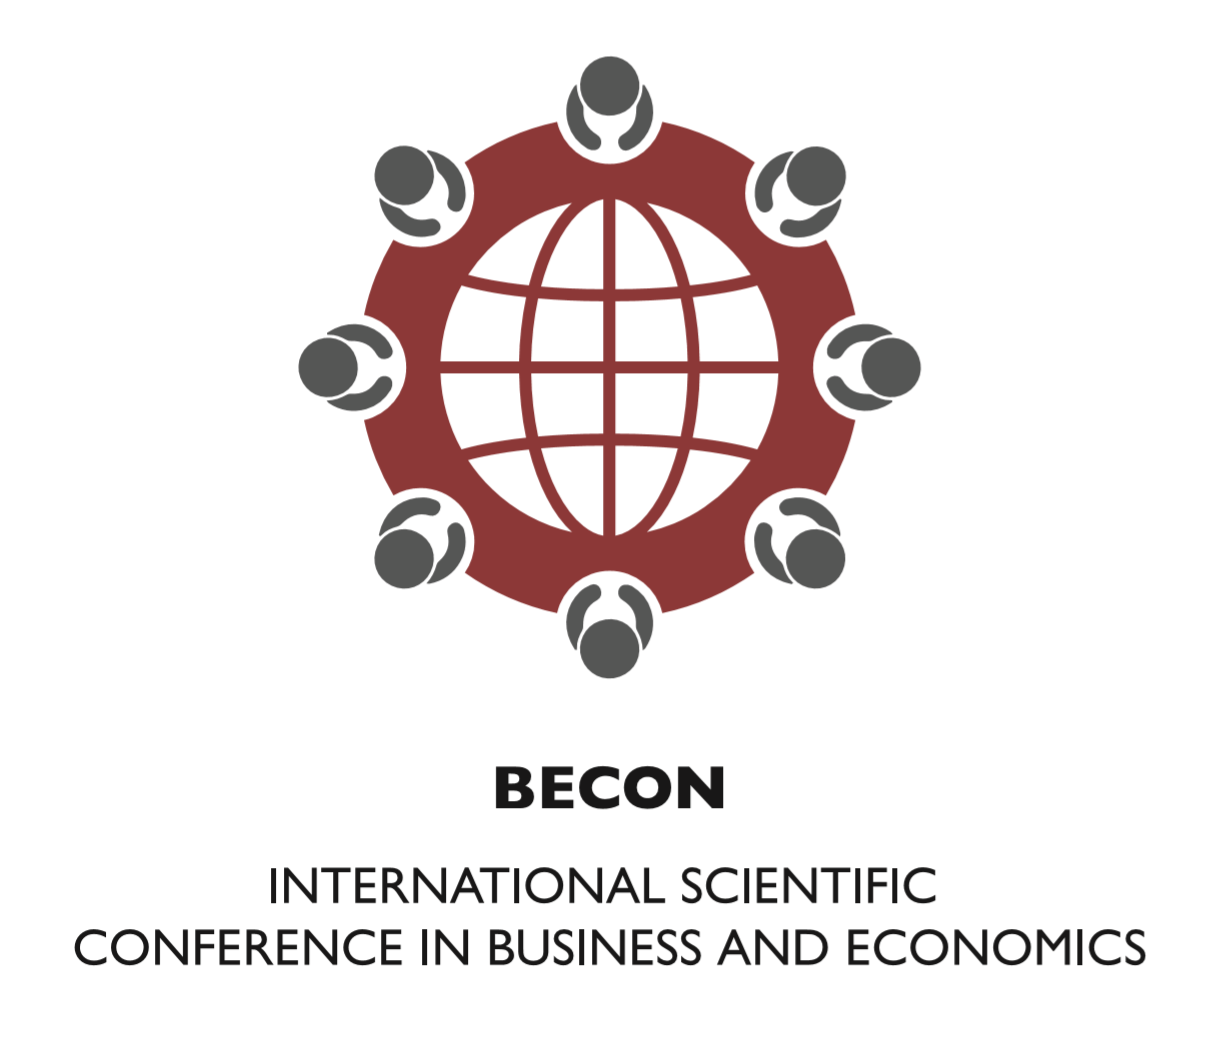 International Scientific Conference in Business and Economics